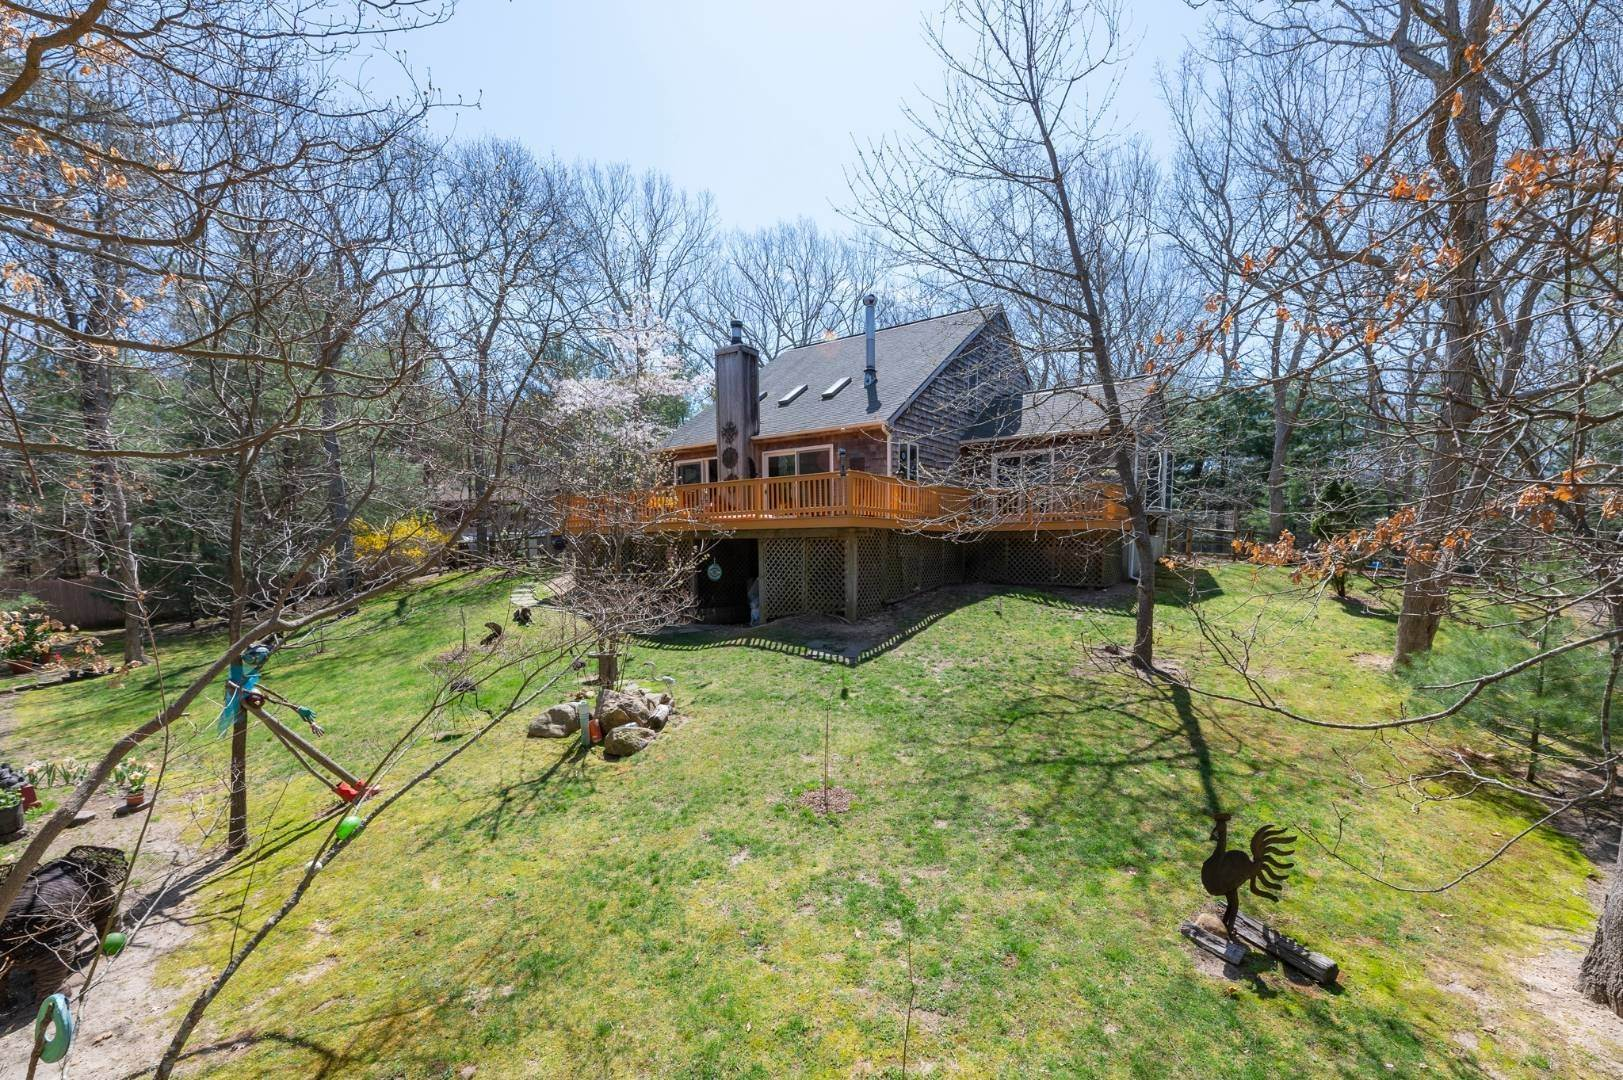 Single Family Home for Sale at Hidden Jewel In East Hampton 26 Harbor View Drive, East Hampton, NY 11937